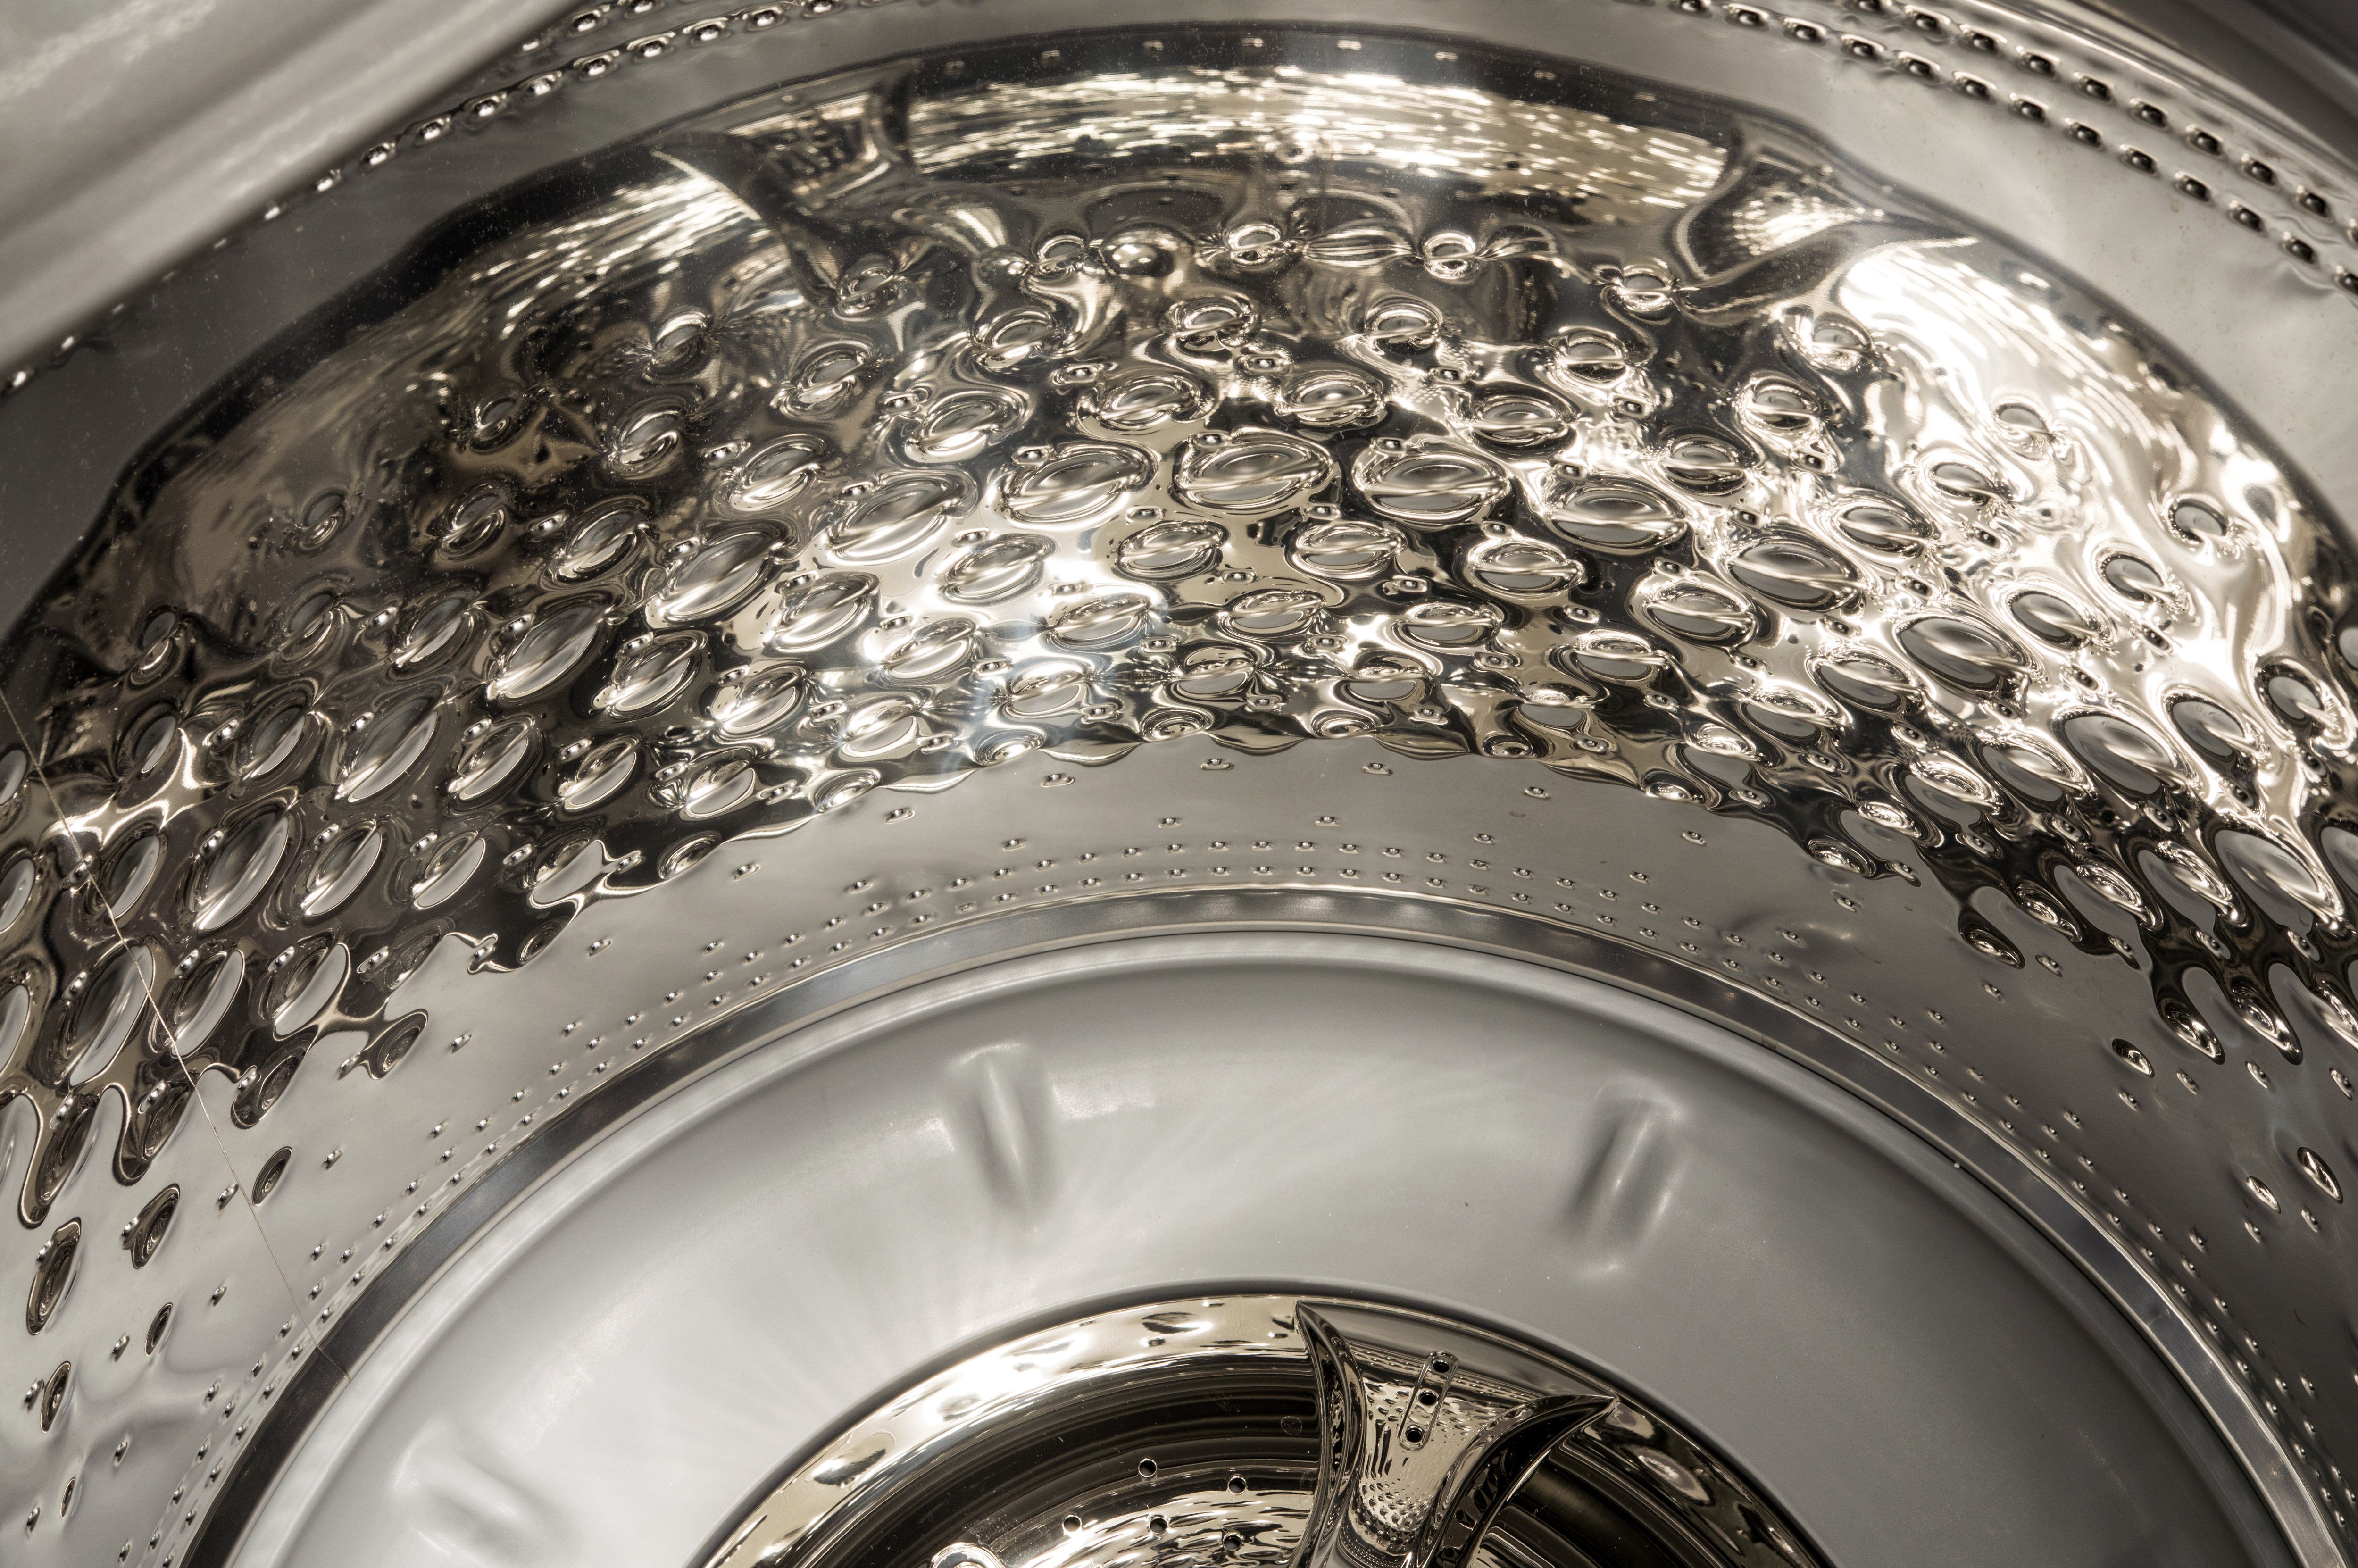 Steel bubbles on the side of the drum help scrub your clothes without destroying them.